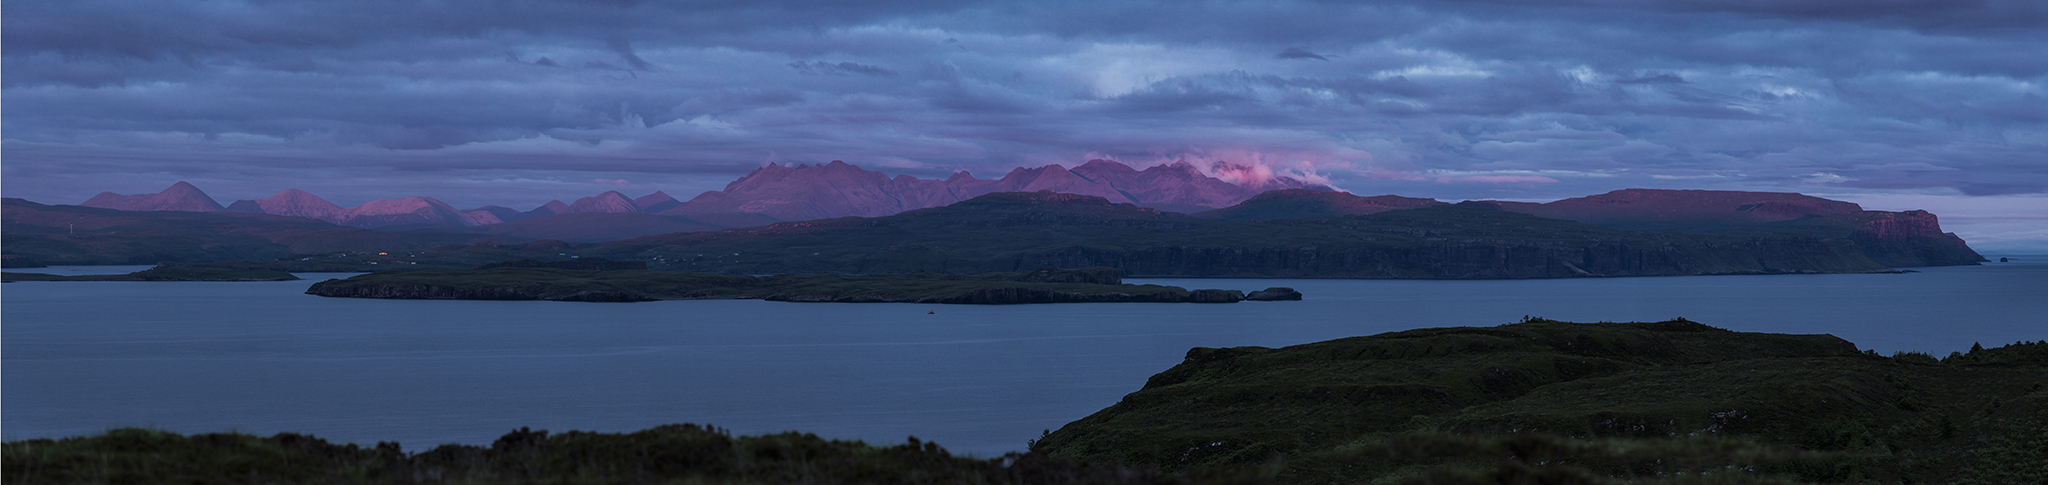 Looking back on Skye at sunset